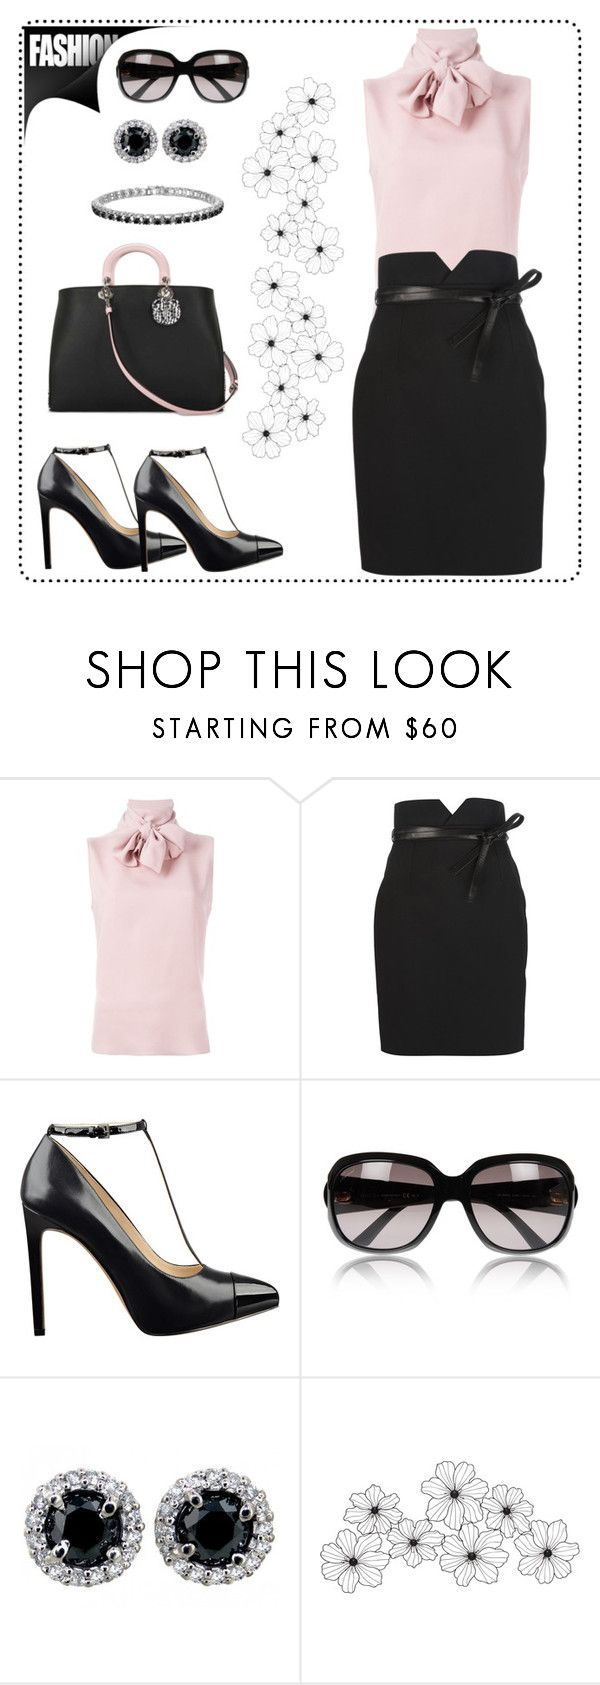 """""""Untitled #761"""" by gallant81 ❤ liked on Polyvore featuring Valentino, Yves Saint Laurent, Nine West, Gucci, women's clothing, women, female, woman, misses and juniors"""